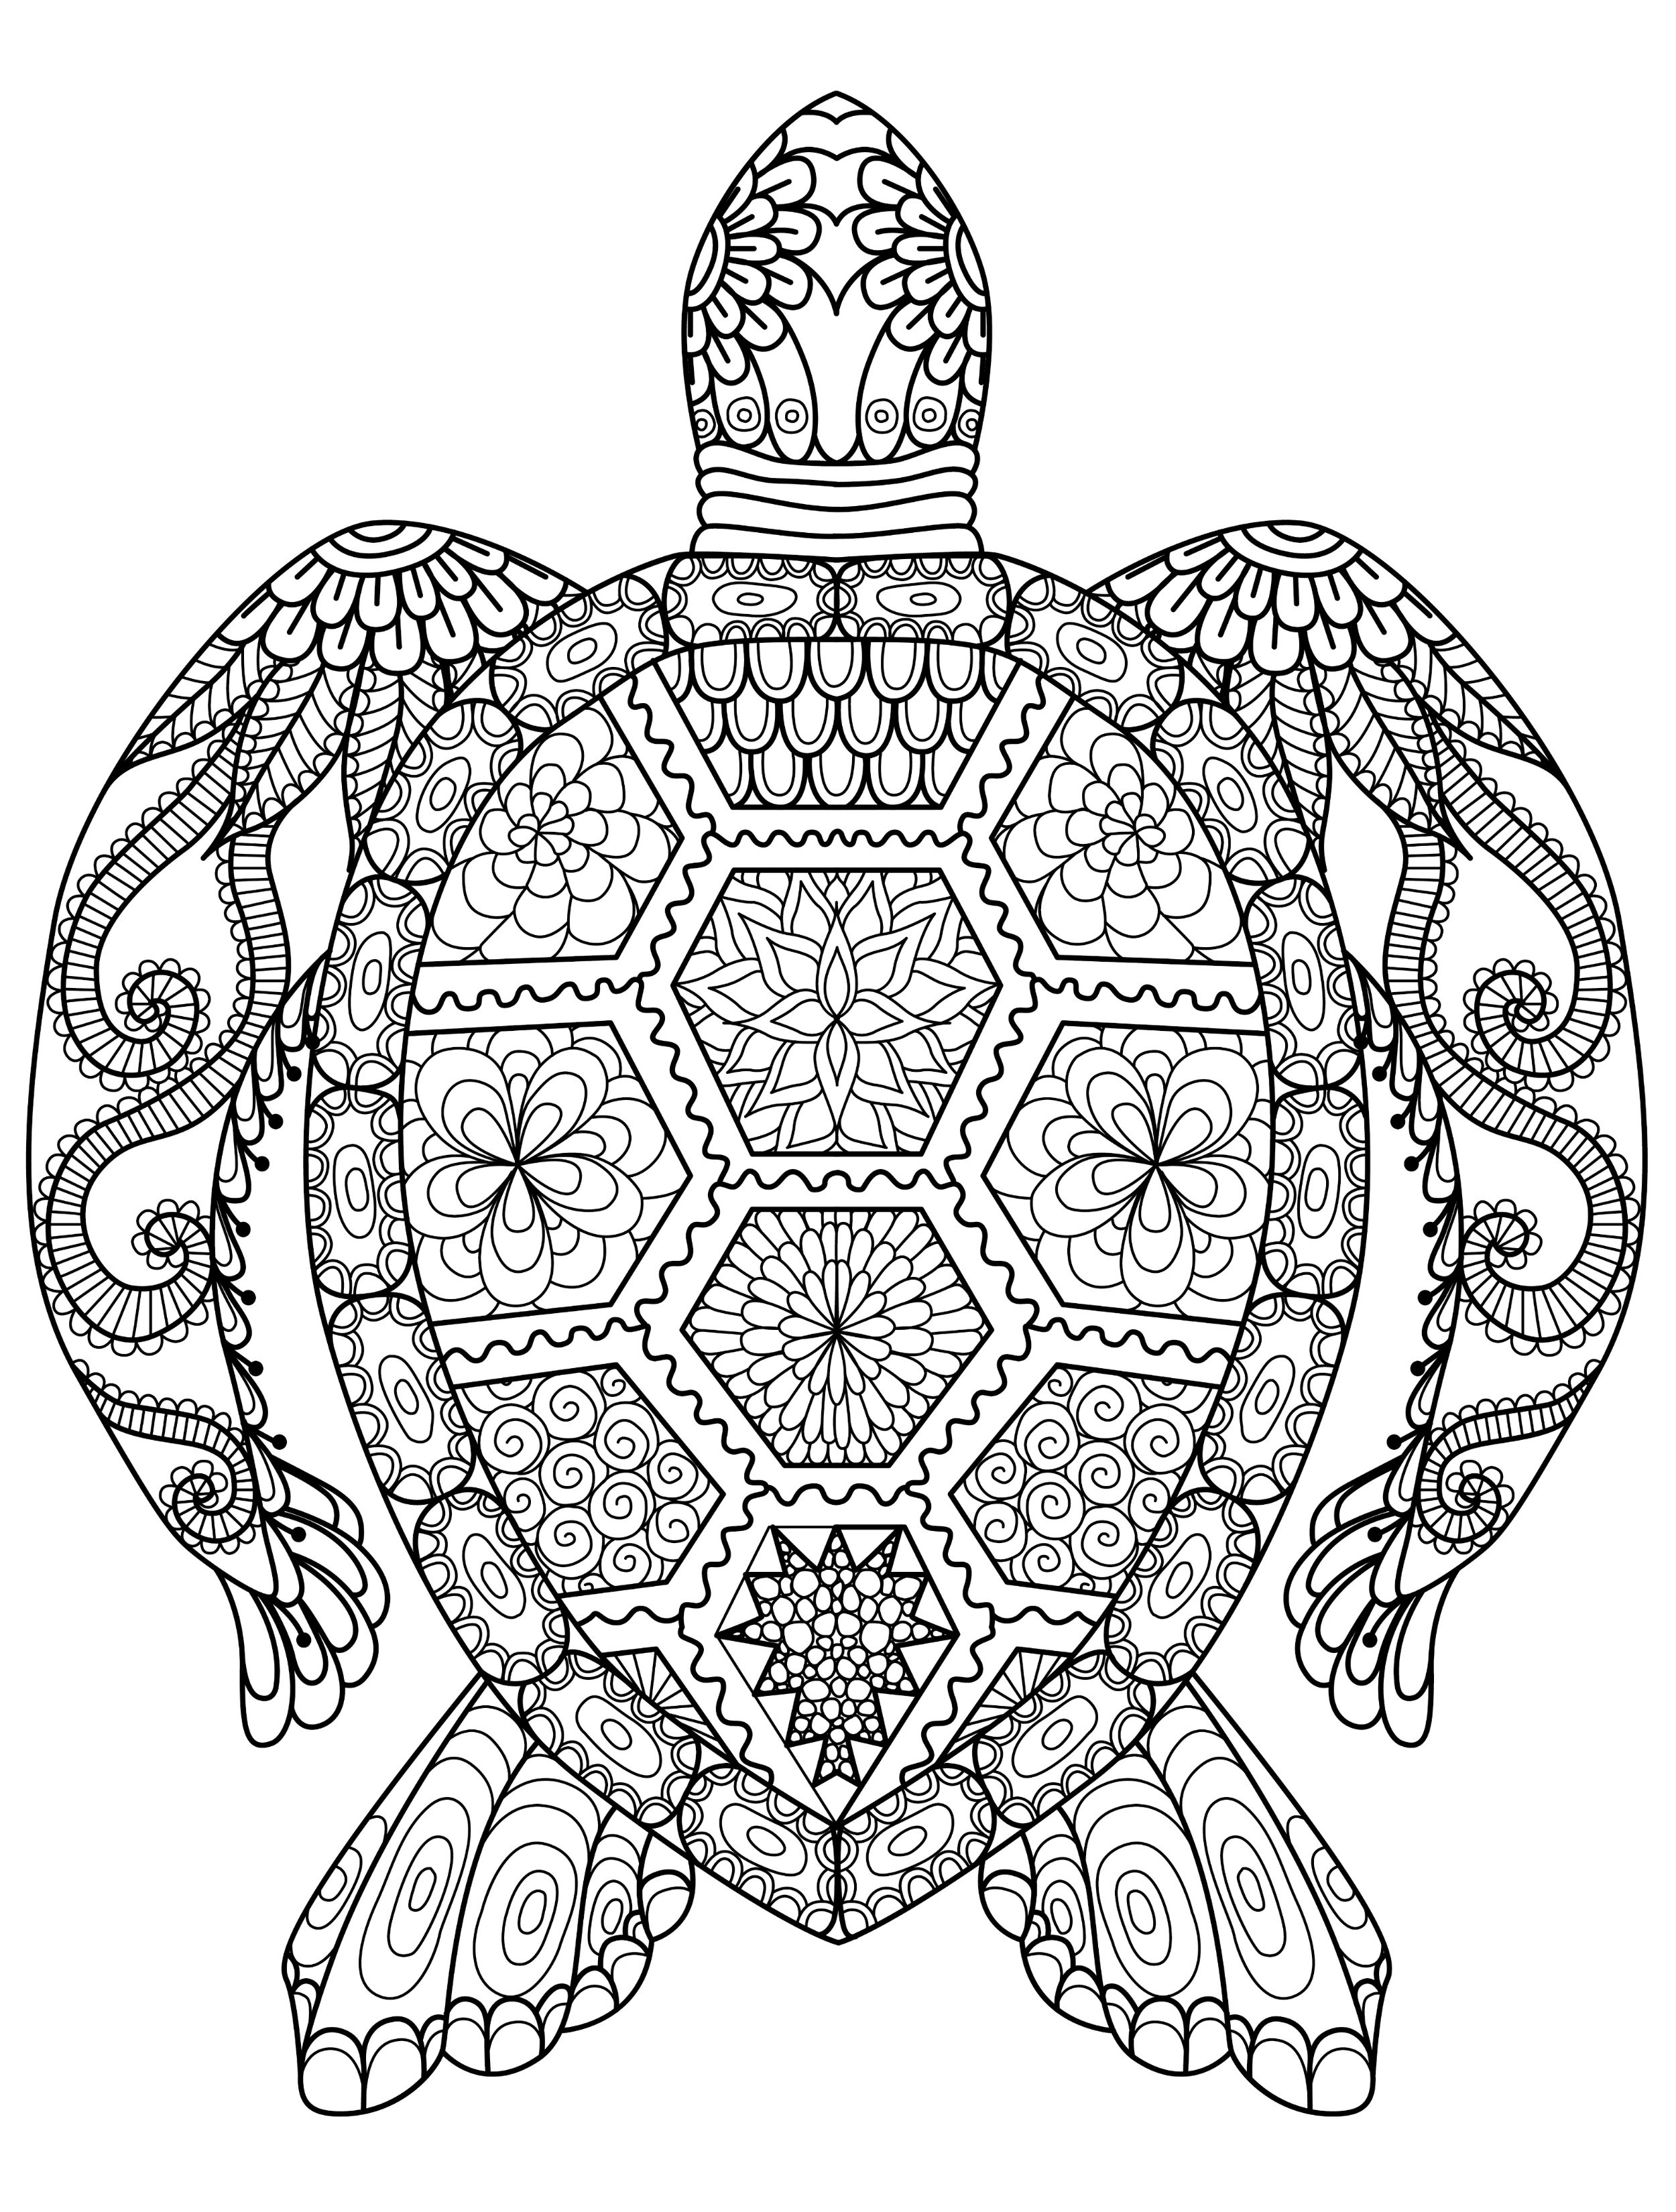 free printable coloring pages for adults and kids adult coloring pages animals best coloring pages for kids printable kids and pages adults coloring for free